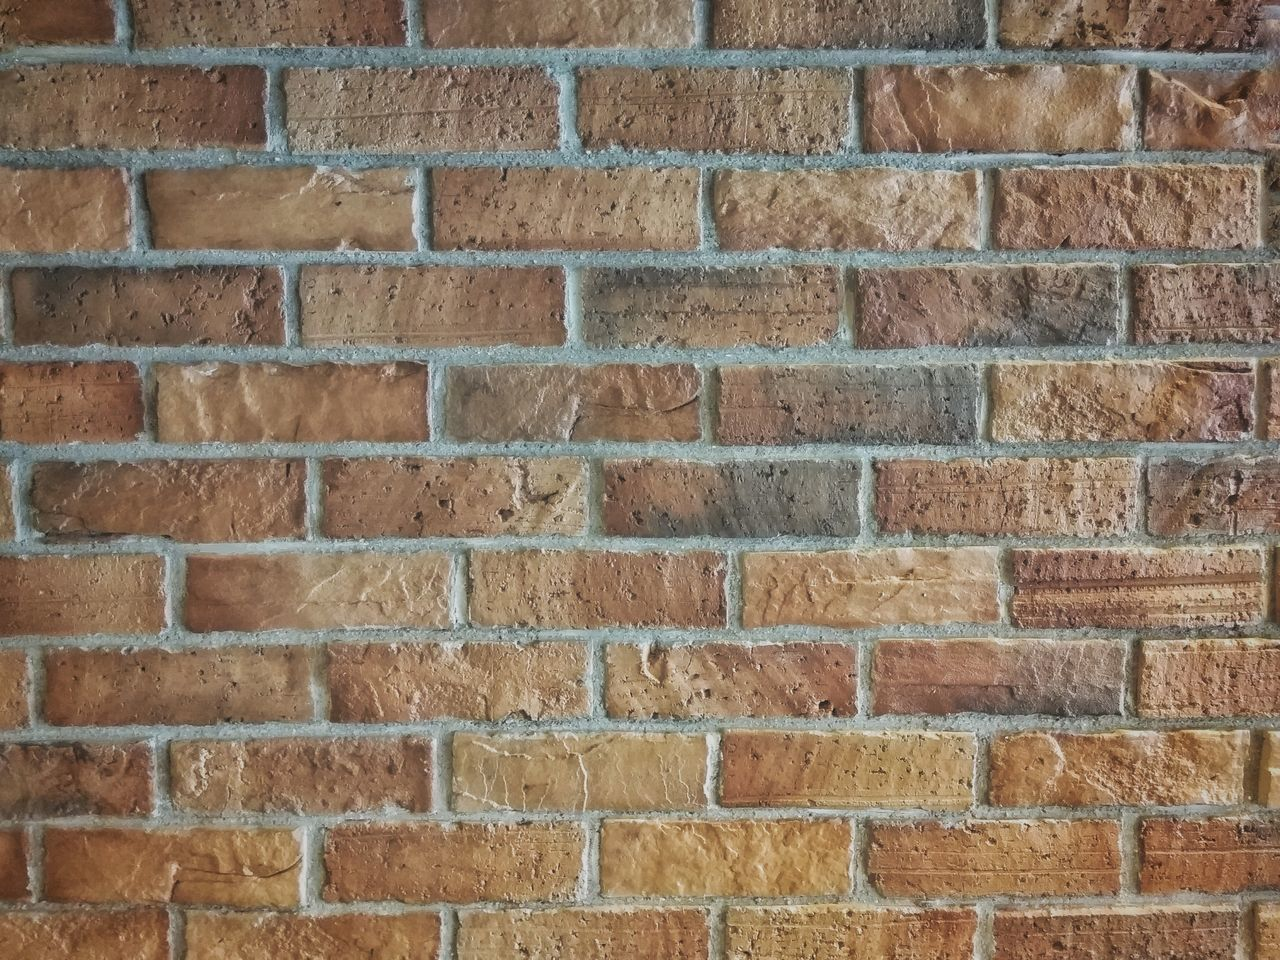 Brick Wall Full Frame Backgrounds Pattern Built Structure No People Textured  Outdoors Architecture Day Building Exterior Close-up Brick Brick Wall Bricks Brick Building Brickstones Bricks And Stones Bricks In The Wall Wall Wall - Building Feature Wallpaper Interior Design Interior Interior Views